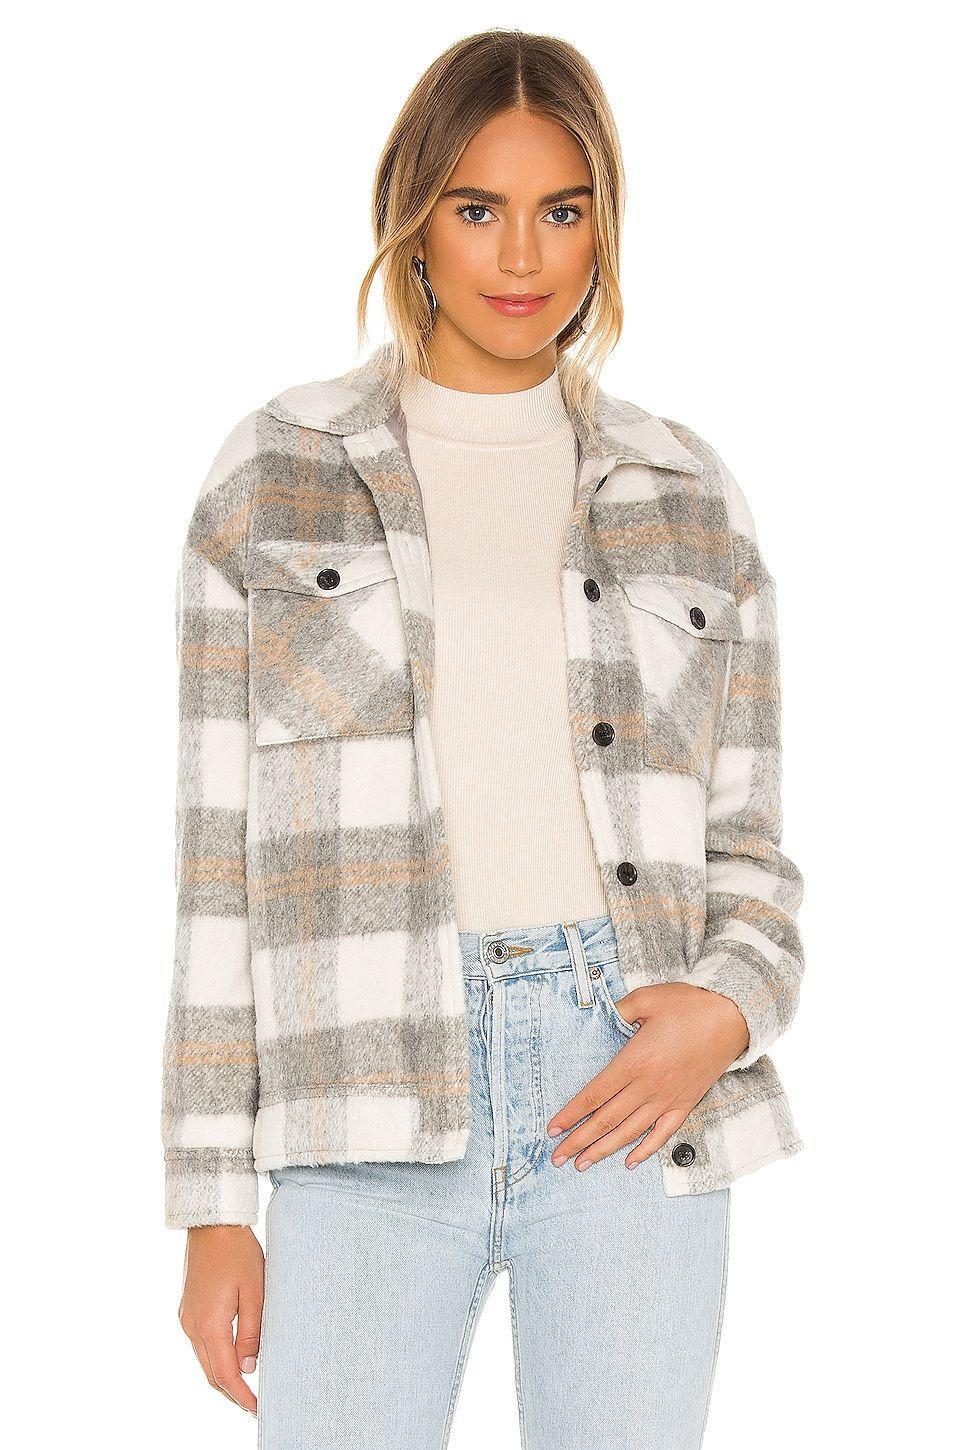 """<p><strong>SAYLOR</strong></p><p>revolve.com</p><p><strong>$286.00</strong></p><p><a href=""""https://go.redirectingat.com?id=74968X1596630&url=https%3A%2F%2Fwww.revolve.com%2Fdp%2FSAYR-WO8%2F&sref=https%3A%2F%2Fwww.cosmopolitan.com%2Fstyle-beauty%2Ffashion%2Fg37222274%2F7th-anniversary-gift-ideas%2F"""" rel=""""nofollow noopener"""" target=""""_blank"""" data-ylk=""""slk:Shop Now"""" class=""""link rapid-noclick-resp"""">Shop Now</a></p><p>The shirt-jacket trend is going strong, my friends. And this plaid one is just way too good to pass up.</p>"""